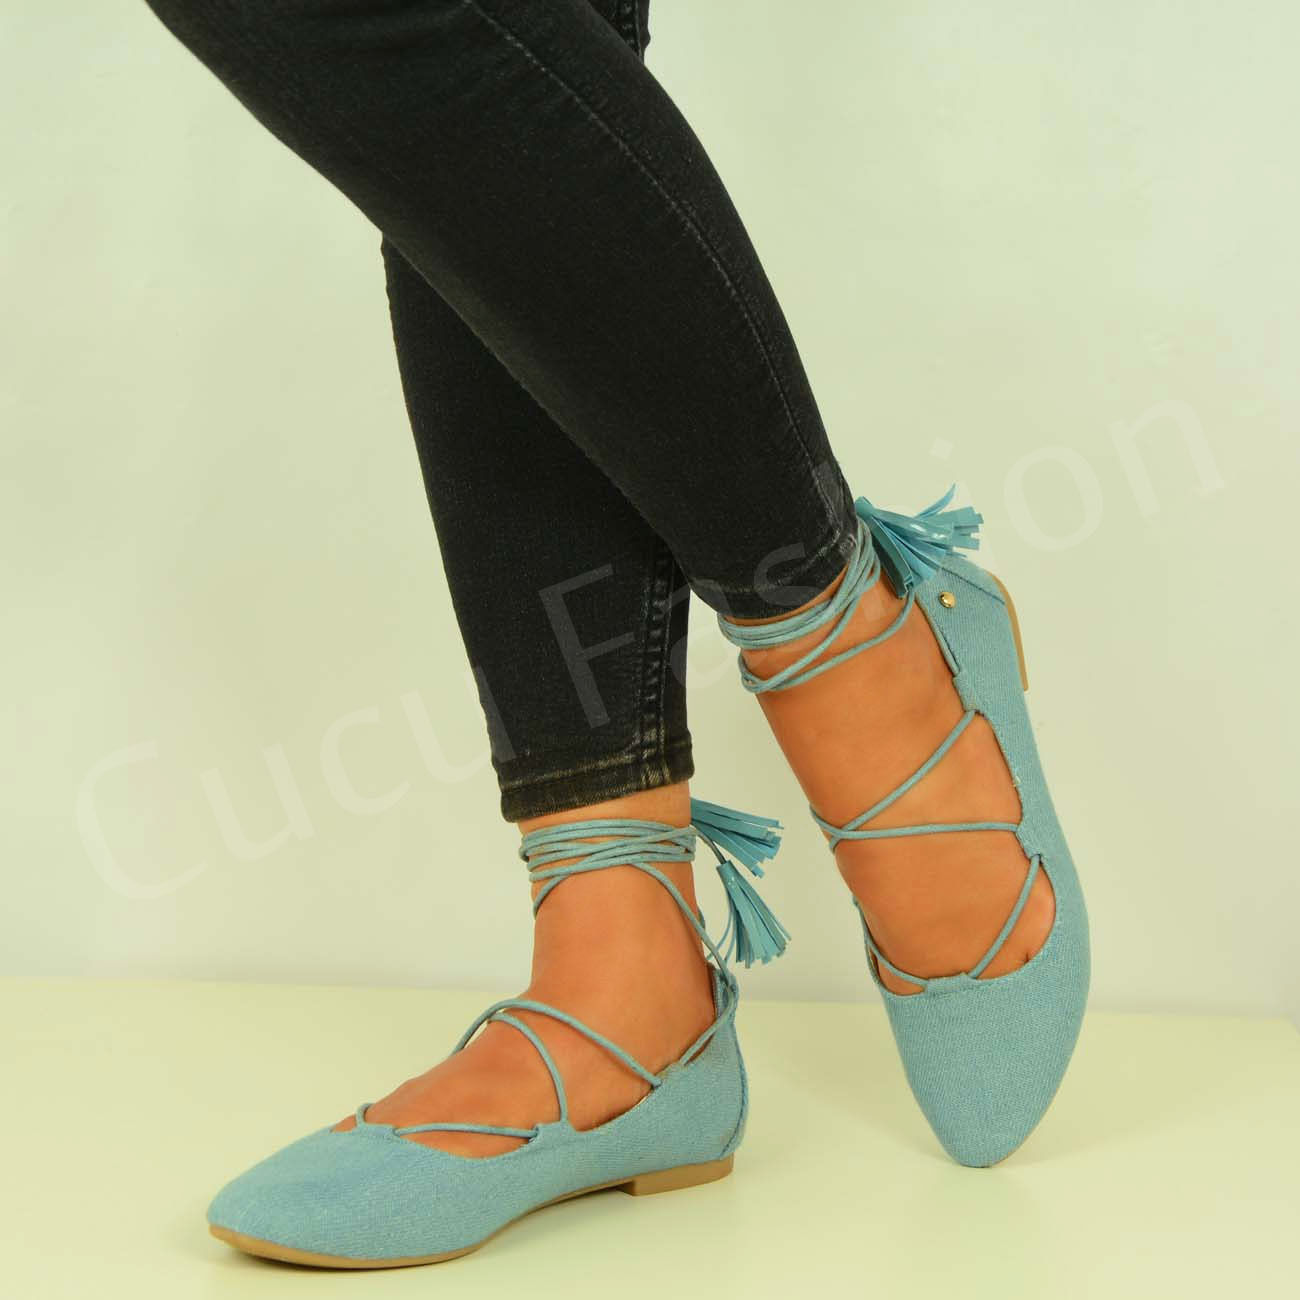 Find great deals on eBay for lace ballet shoes. Shop with confidence.